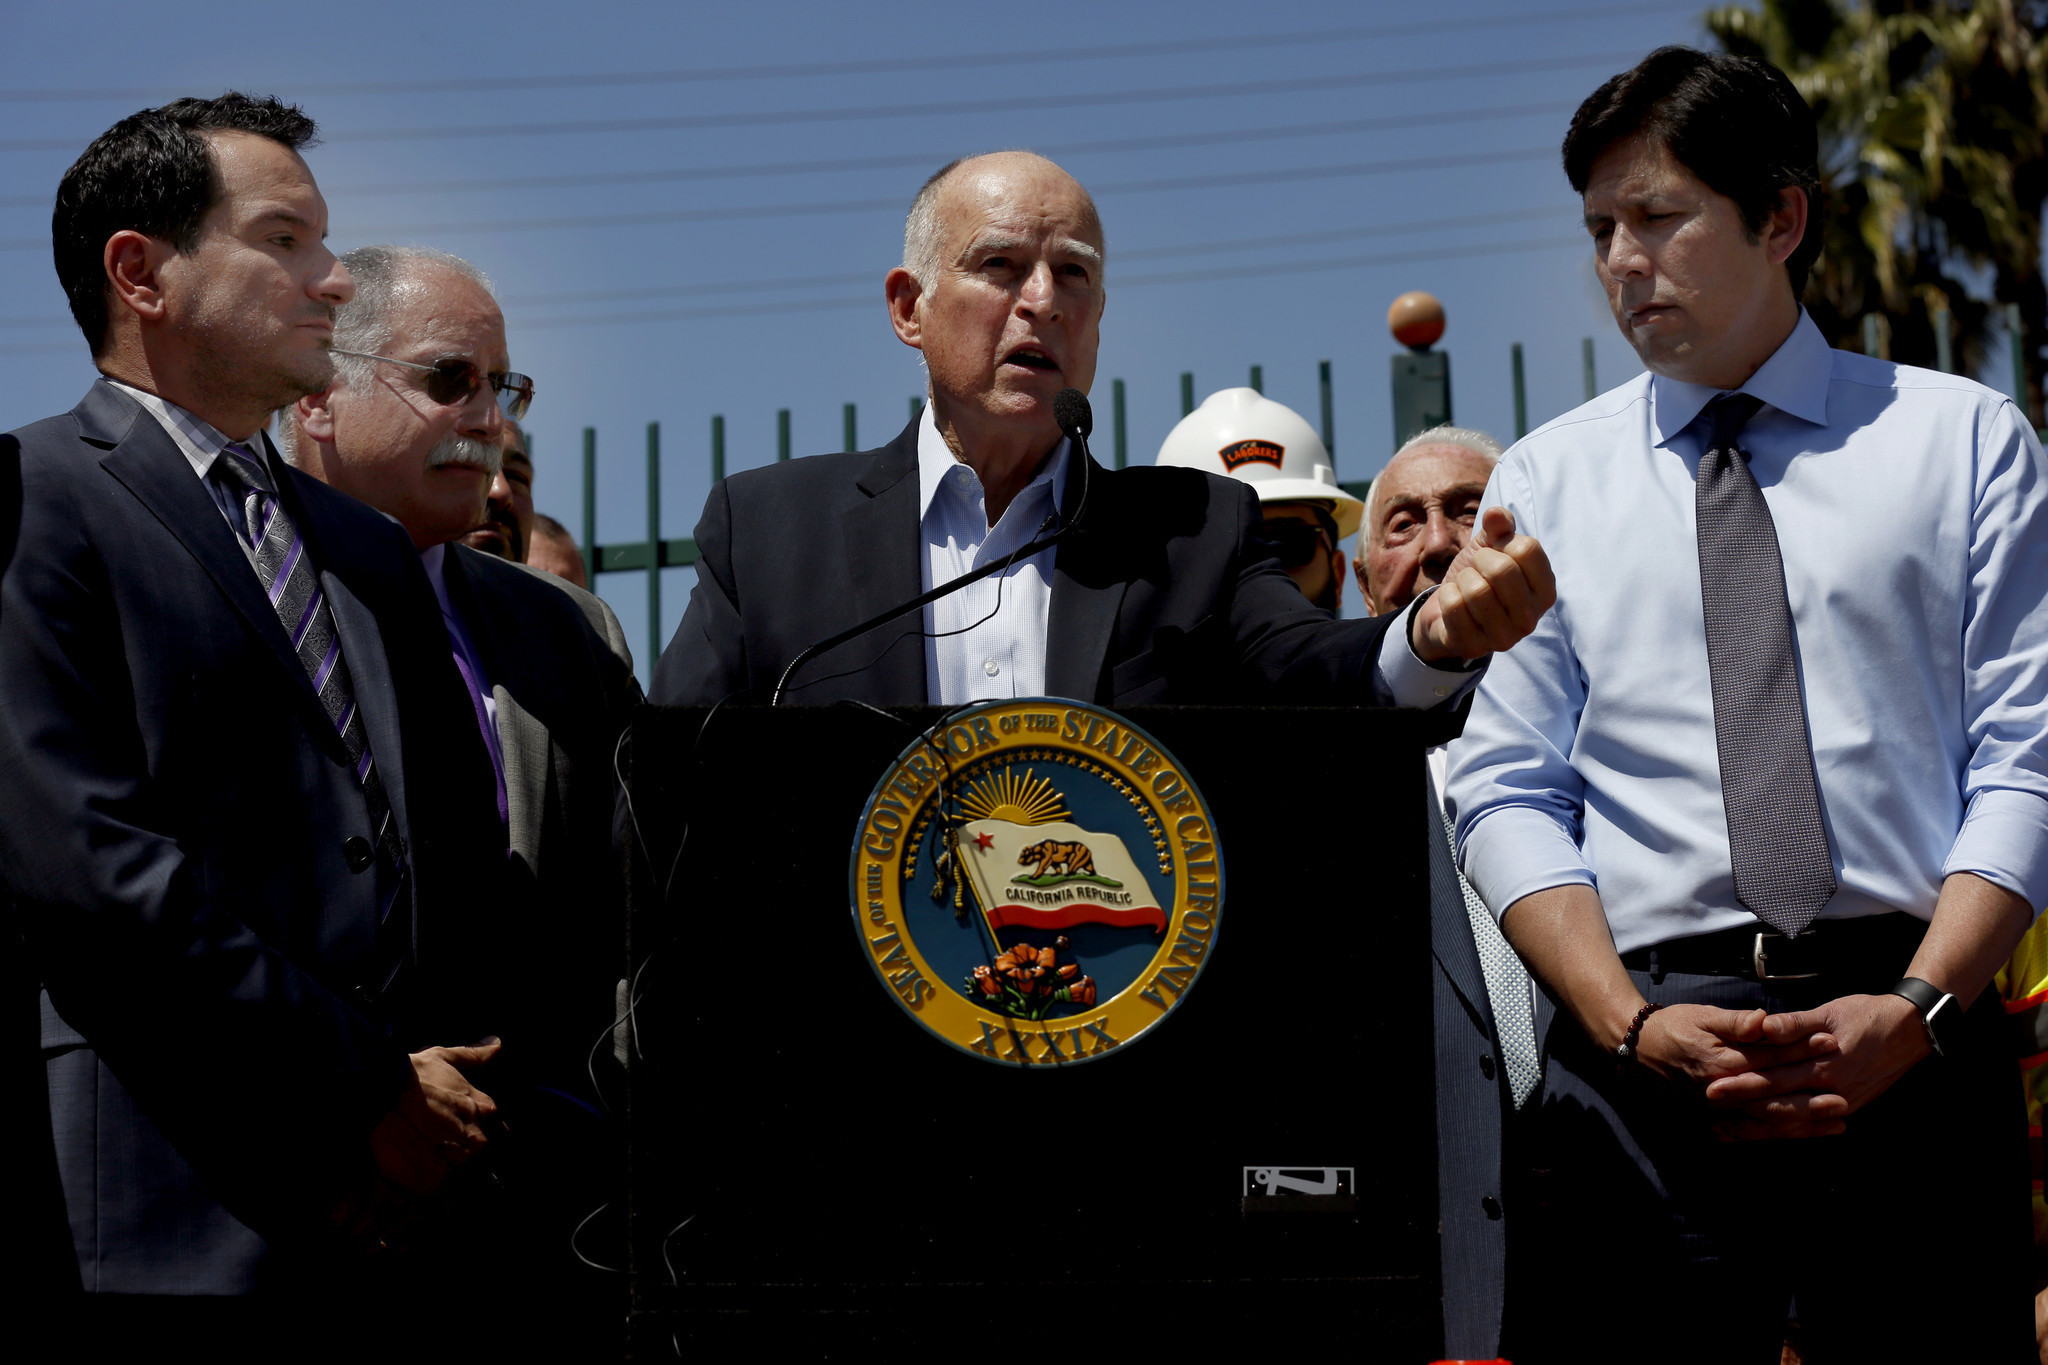 Assembly Speaker Anthony Rendon, left, Gov. Jerry Brown and Senate President Pro Tem Kevin de León appear in Riverside in April to call for gas tax hike. All three are getting raises. (Francine Orr / Los Angeles Times)